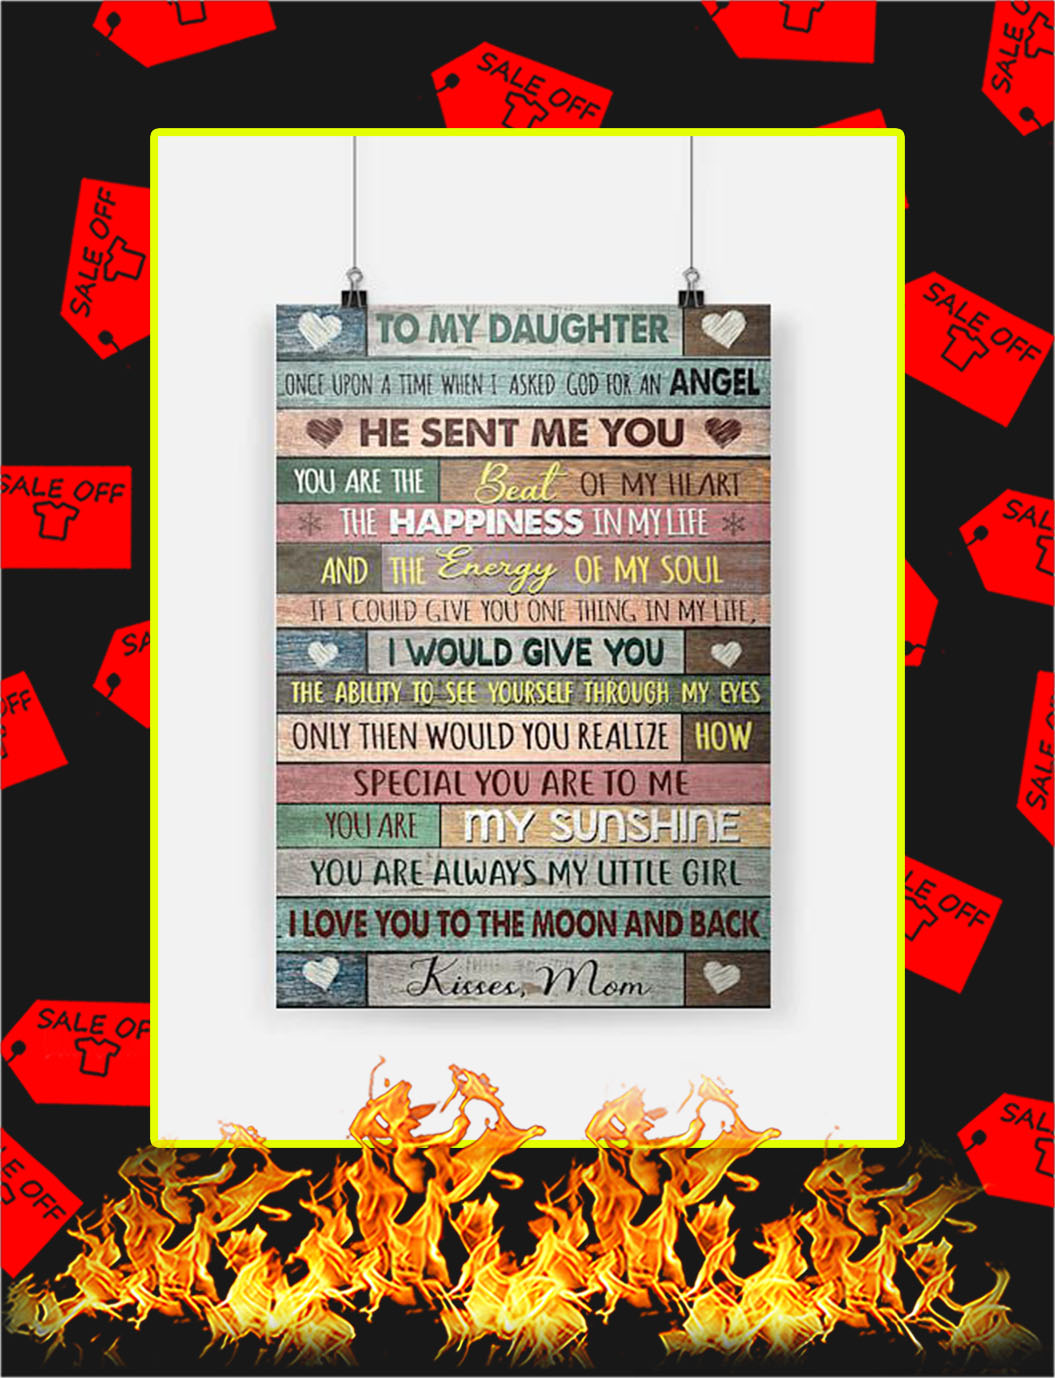 To My Daughter Kisses Mom Poster - A4